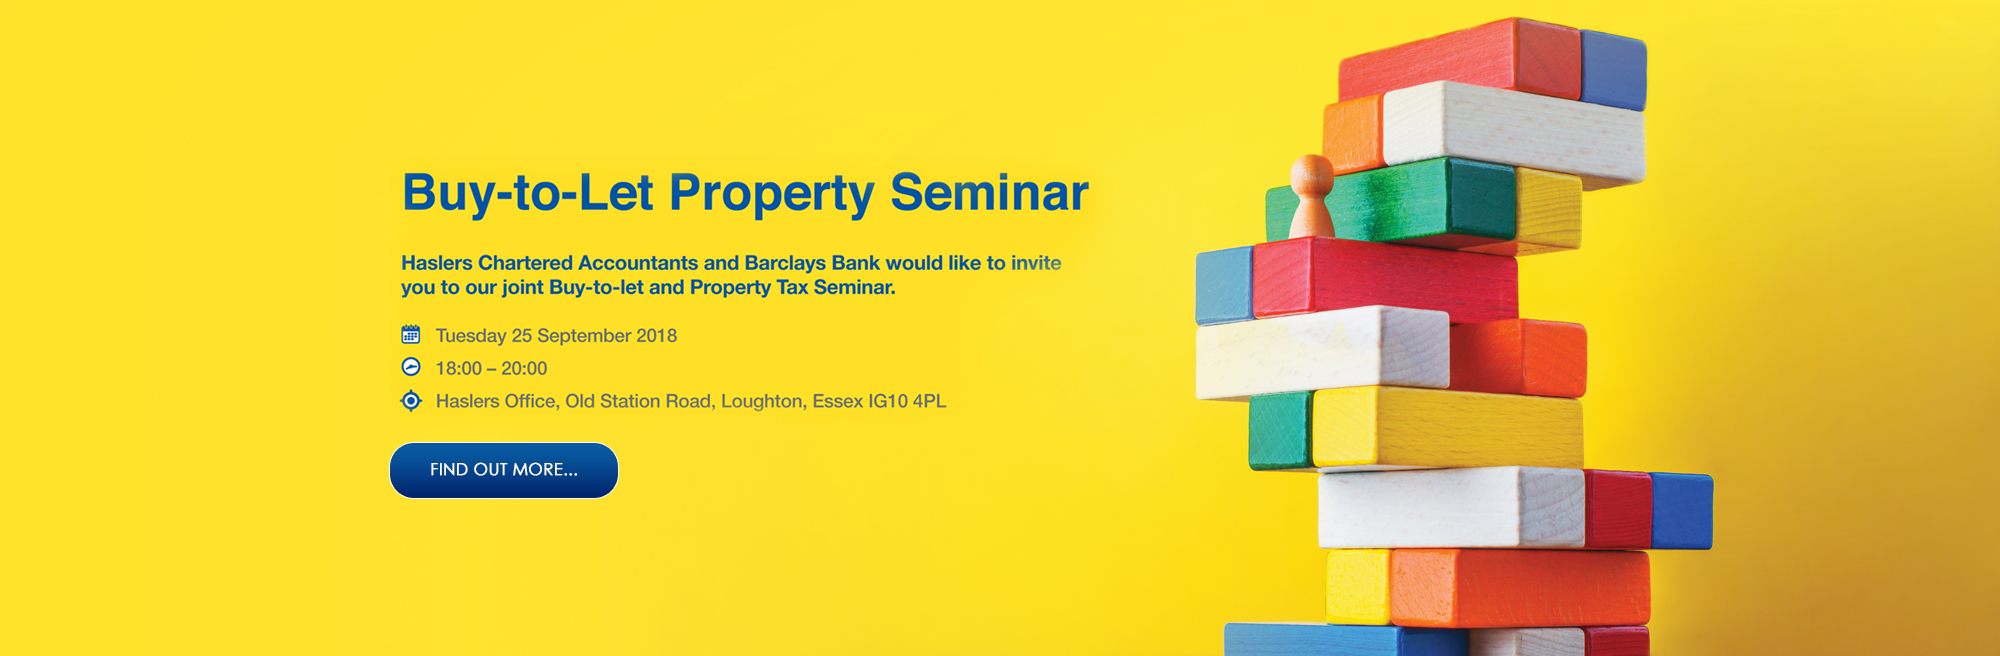 Barclays Bank team up with Haslers Chartered Accountants for free landlords seminar